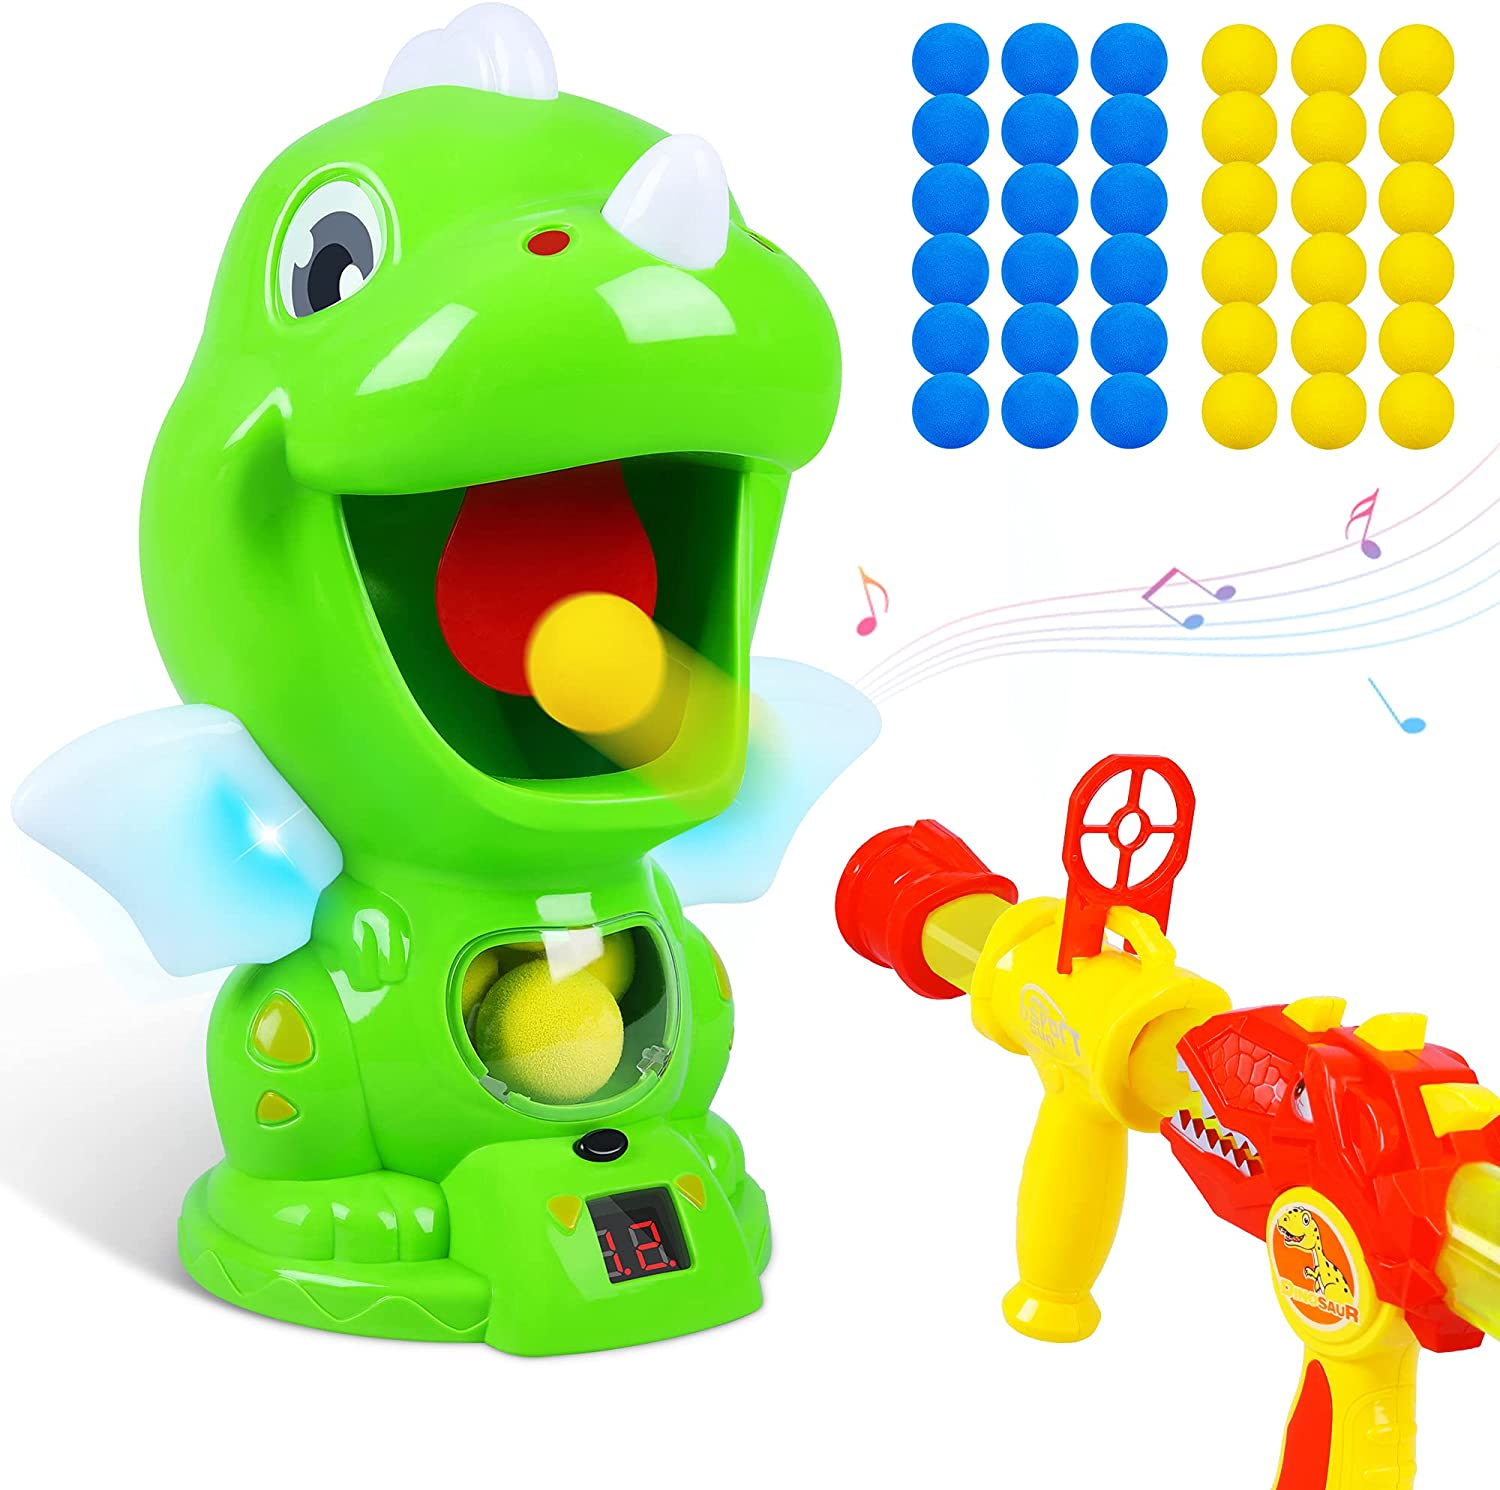 CUKU Dinosaur Toys Shooting Target Toy Gun for Kids-Air Pump Shooting Game with 36 Foam Balls,Voice and LED Score Record, Indoor Outdoor Gifts for 5 6 7 8 9 10 11 12 Years Old Boys Girls